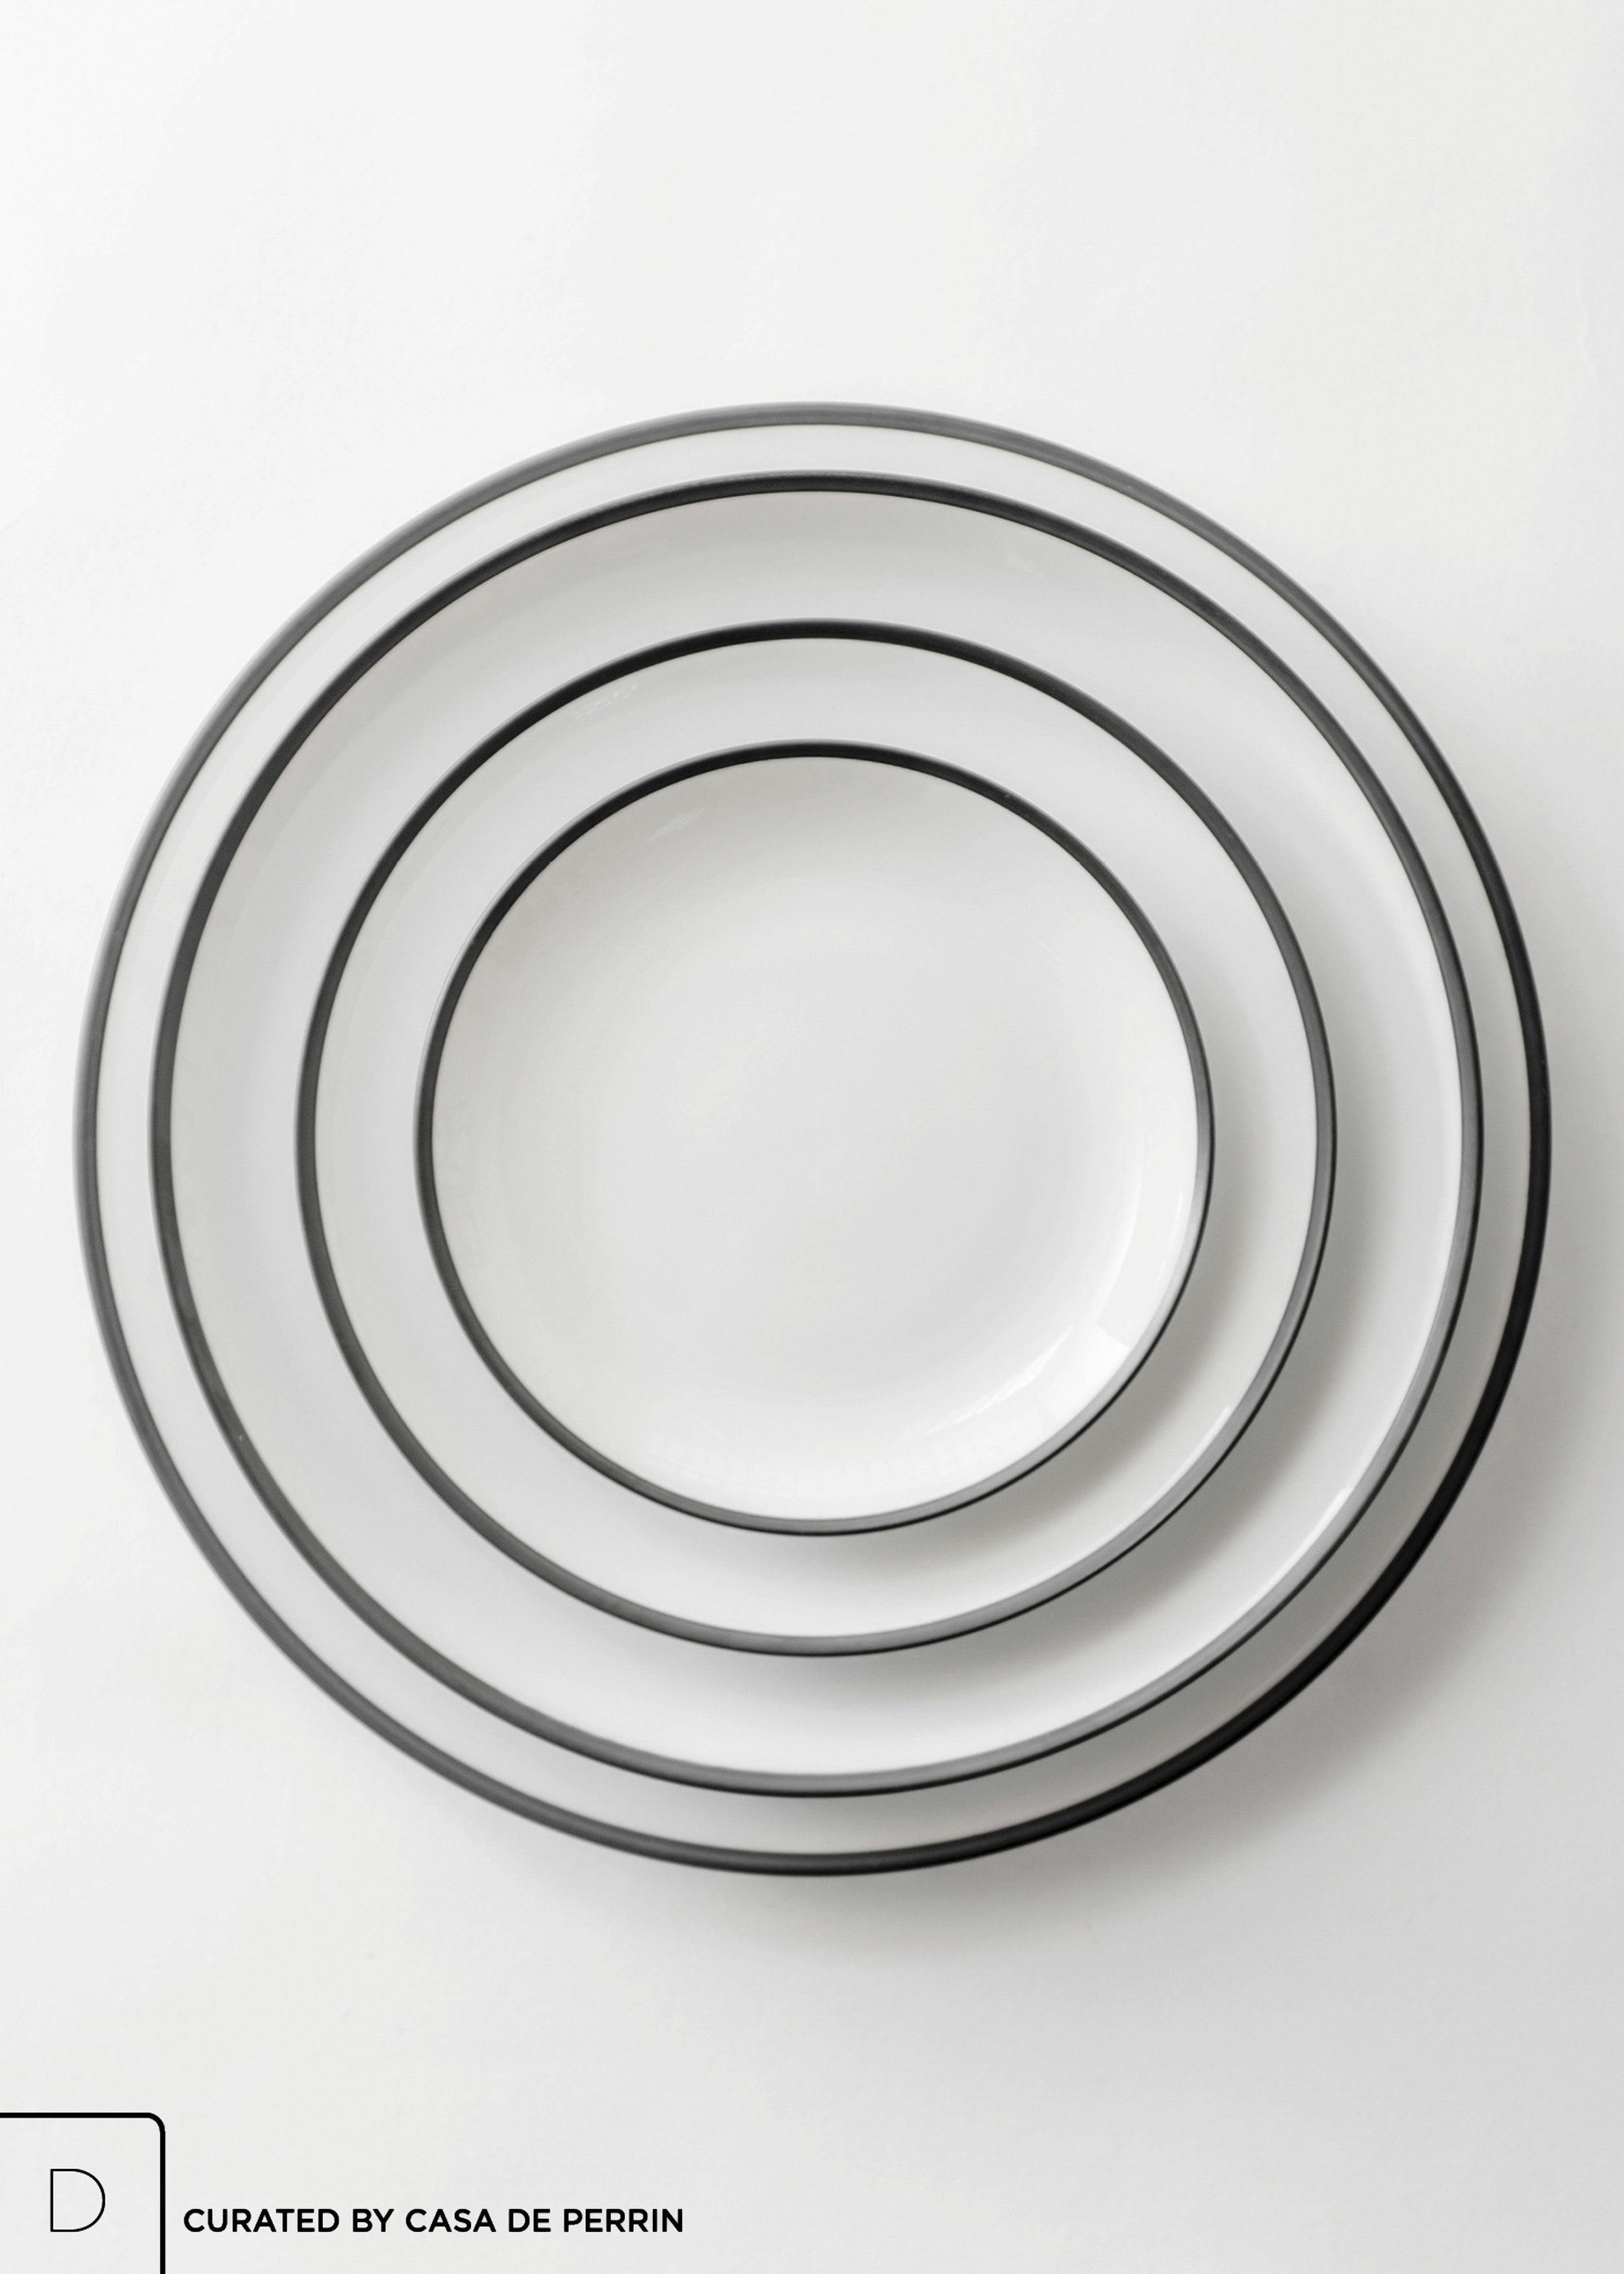 The Finest Limoges Porcelain With A Hand Painted Brushed Matte Black Rim Charger Plate 12 Dinner Plate Matte Dinnerware Black And White Plates Matte Black